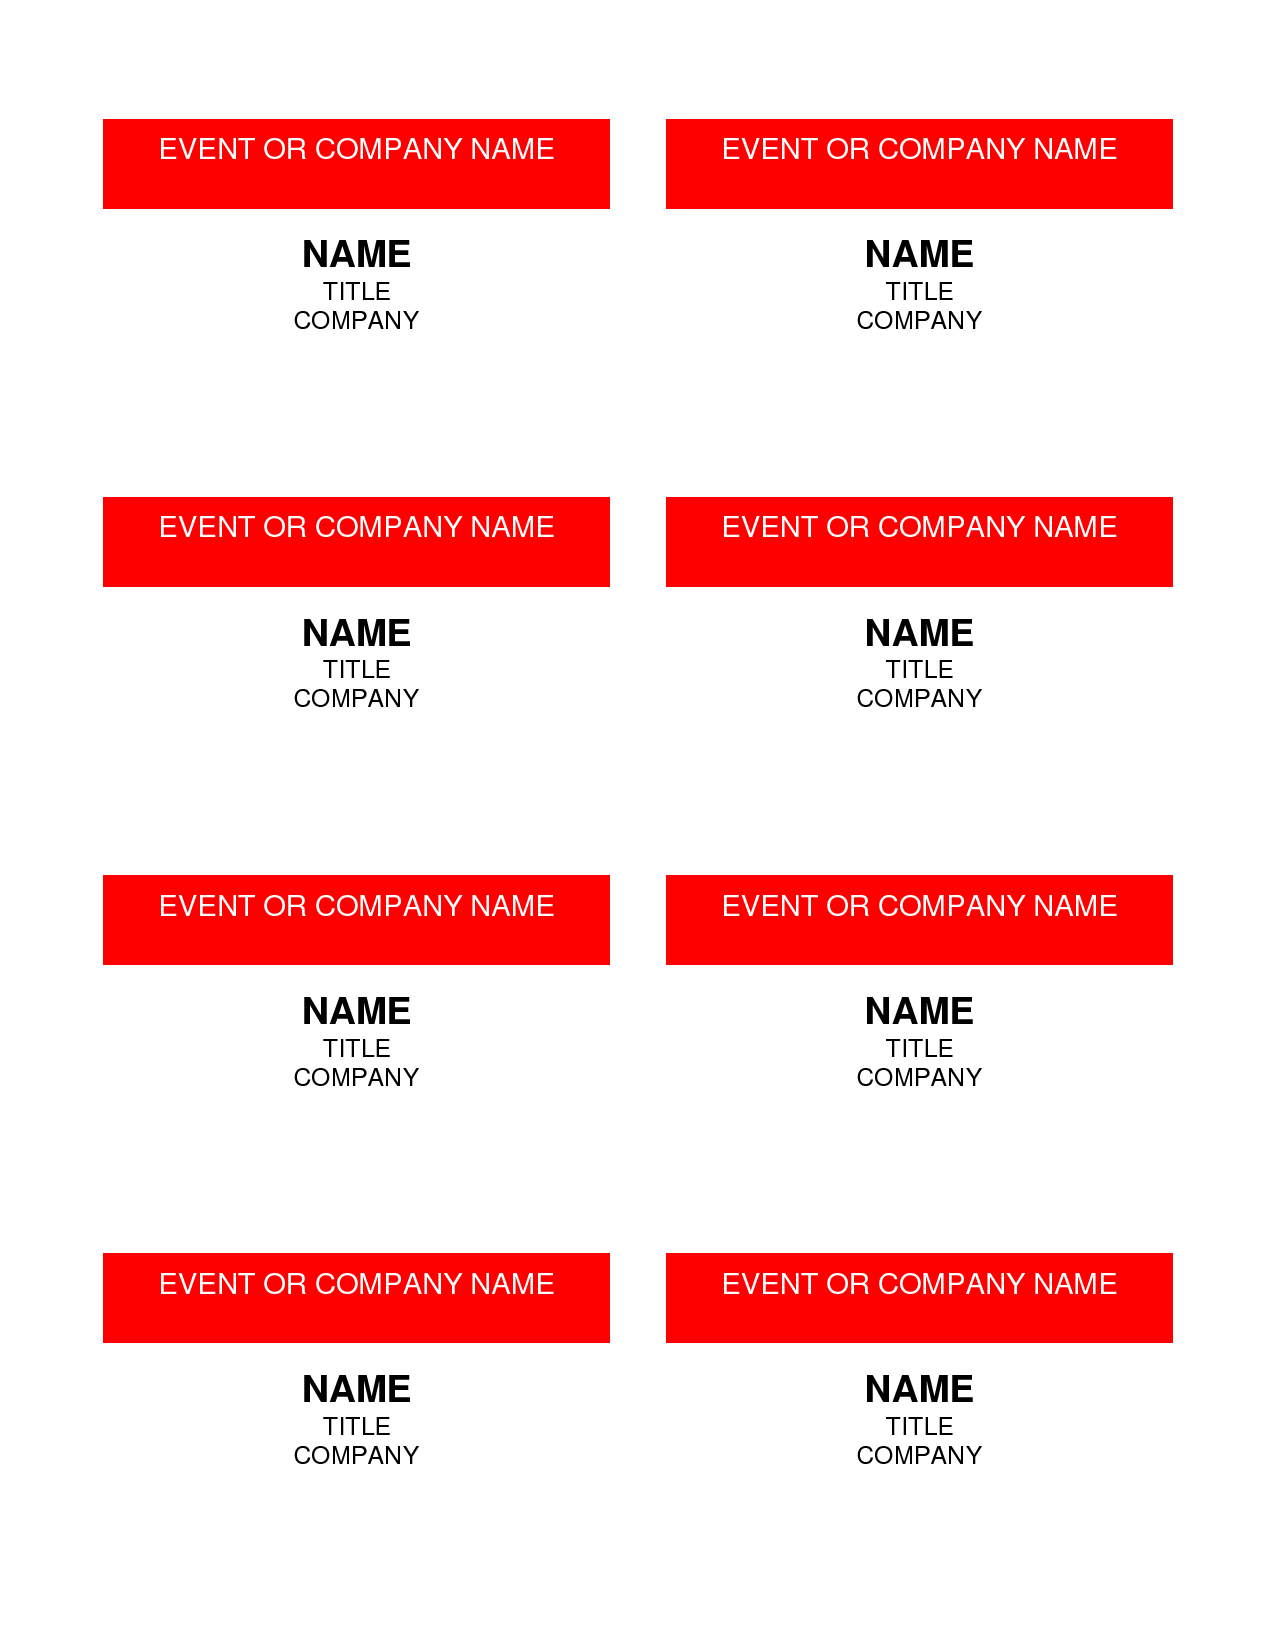 14 Name Badge Templates Images - Christmas Name Badge Templates